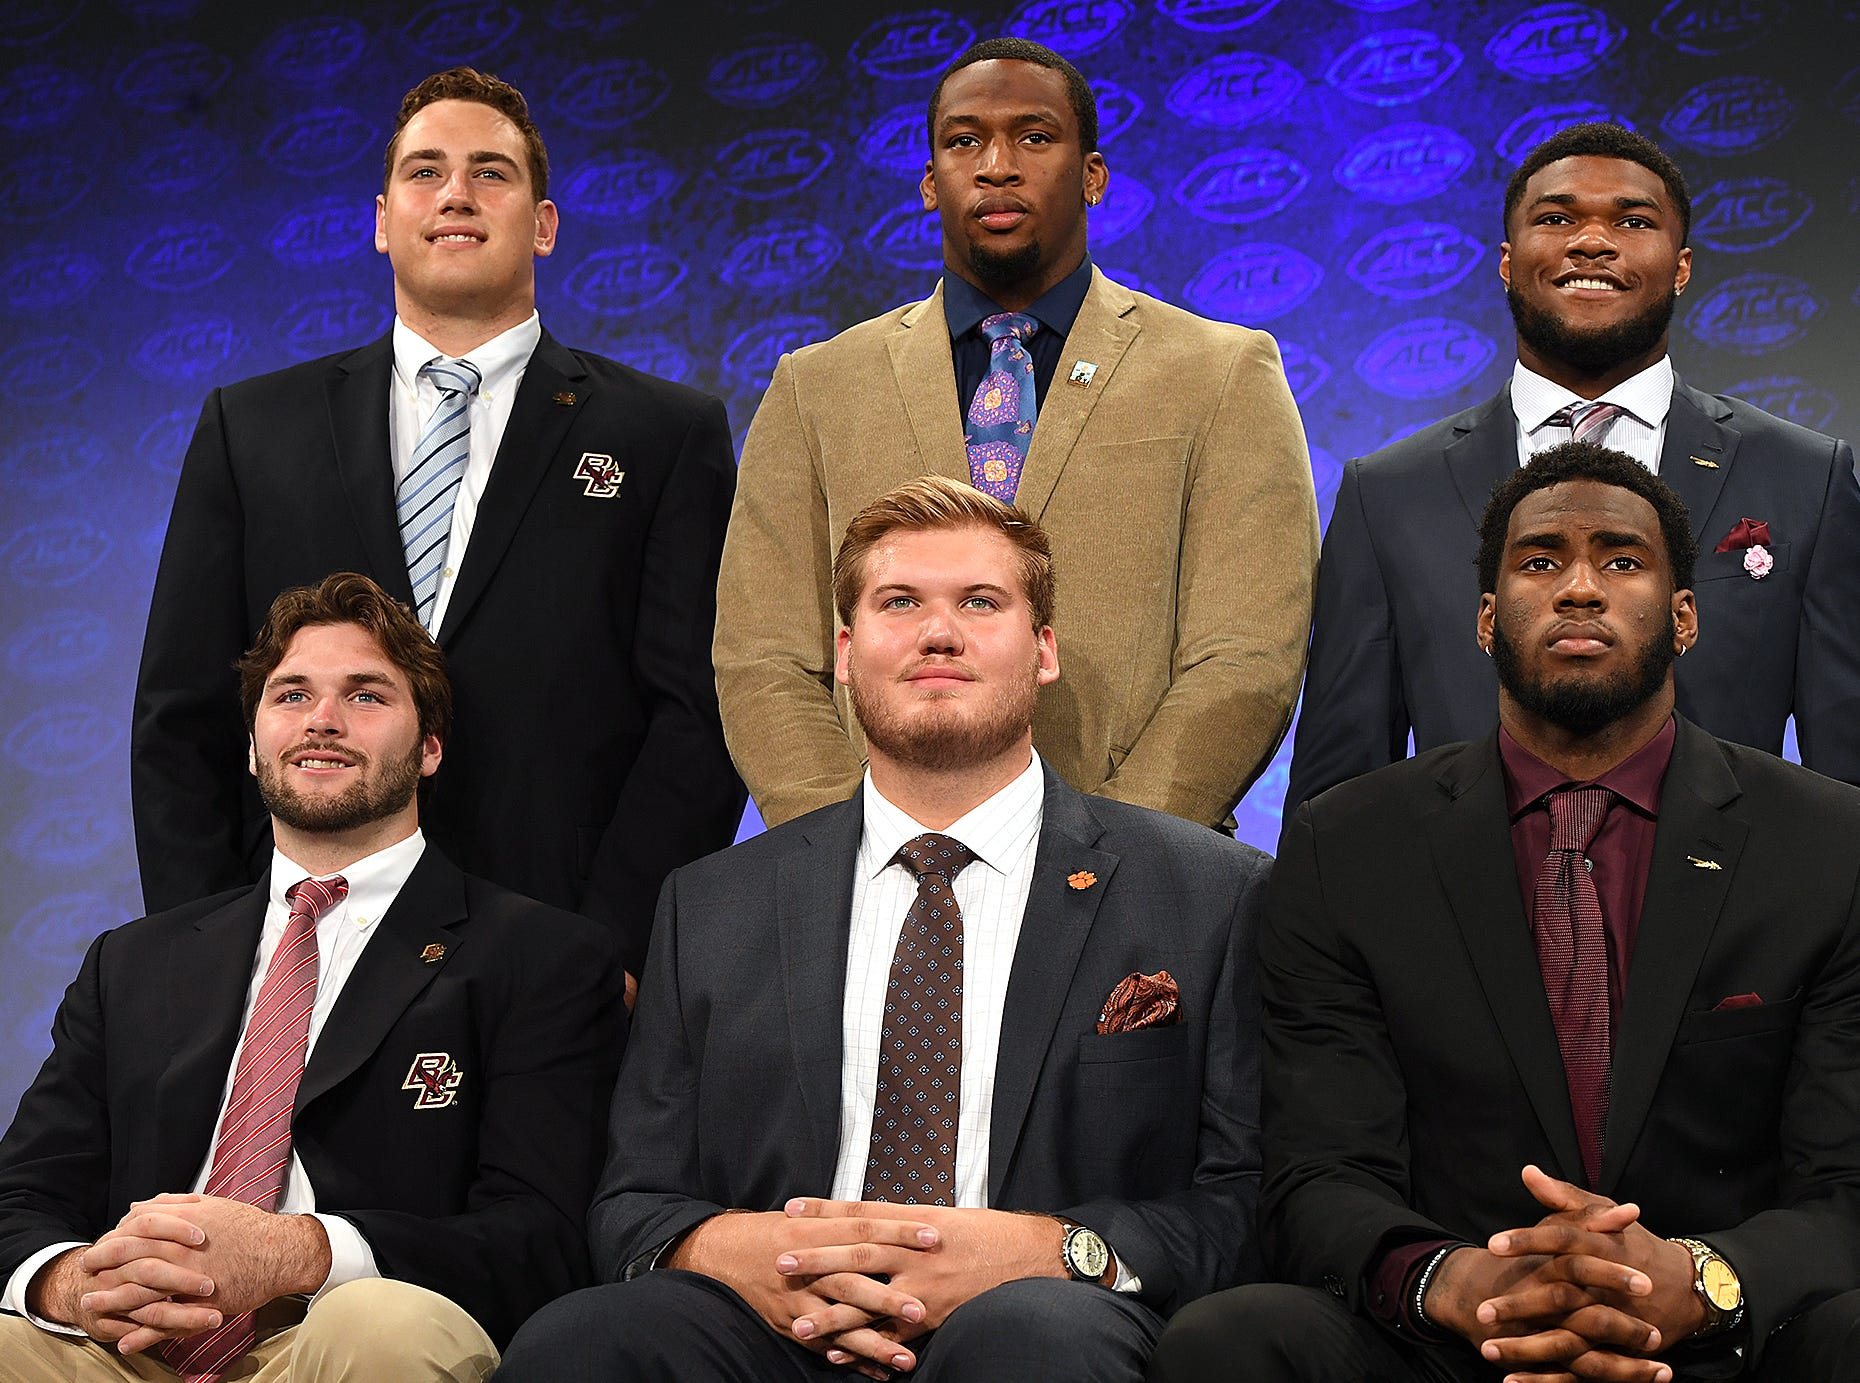 Clemson's Mitch Hyatt, front center, and Clean Ferrell pose for the Atlantic Division group photo at the ACC Football Kickoff in Charlotte, N.C., Thursday, July 19, 2018.